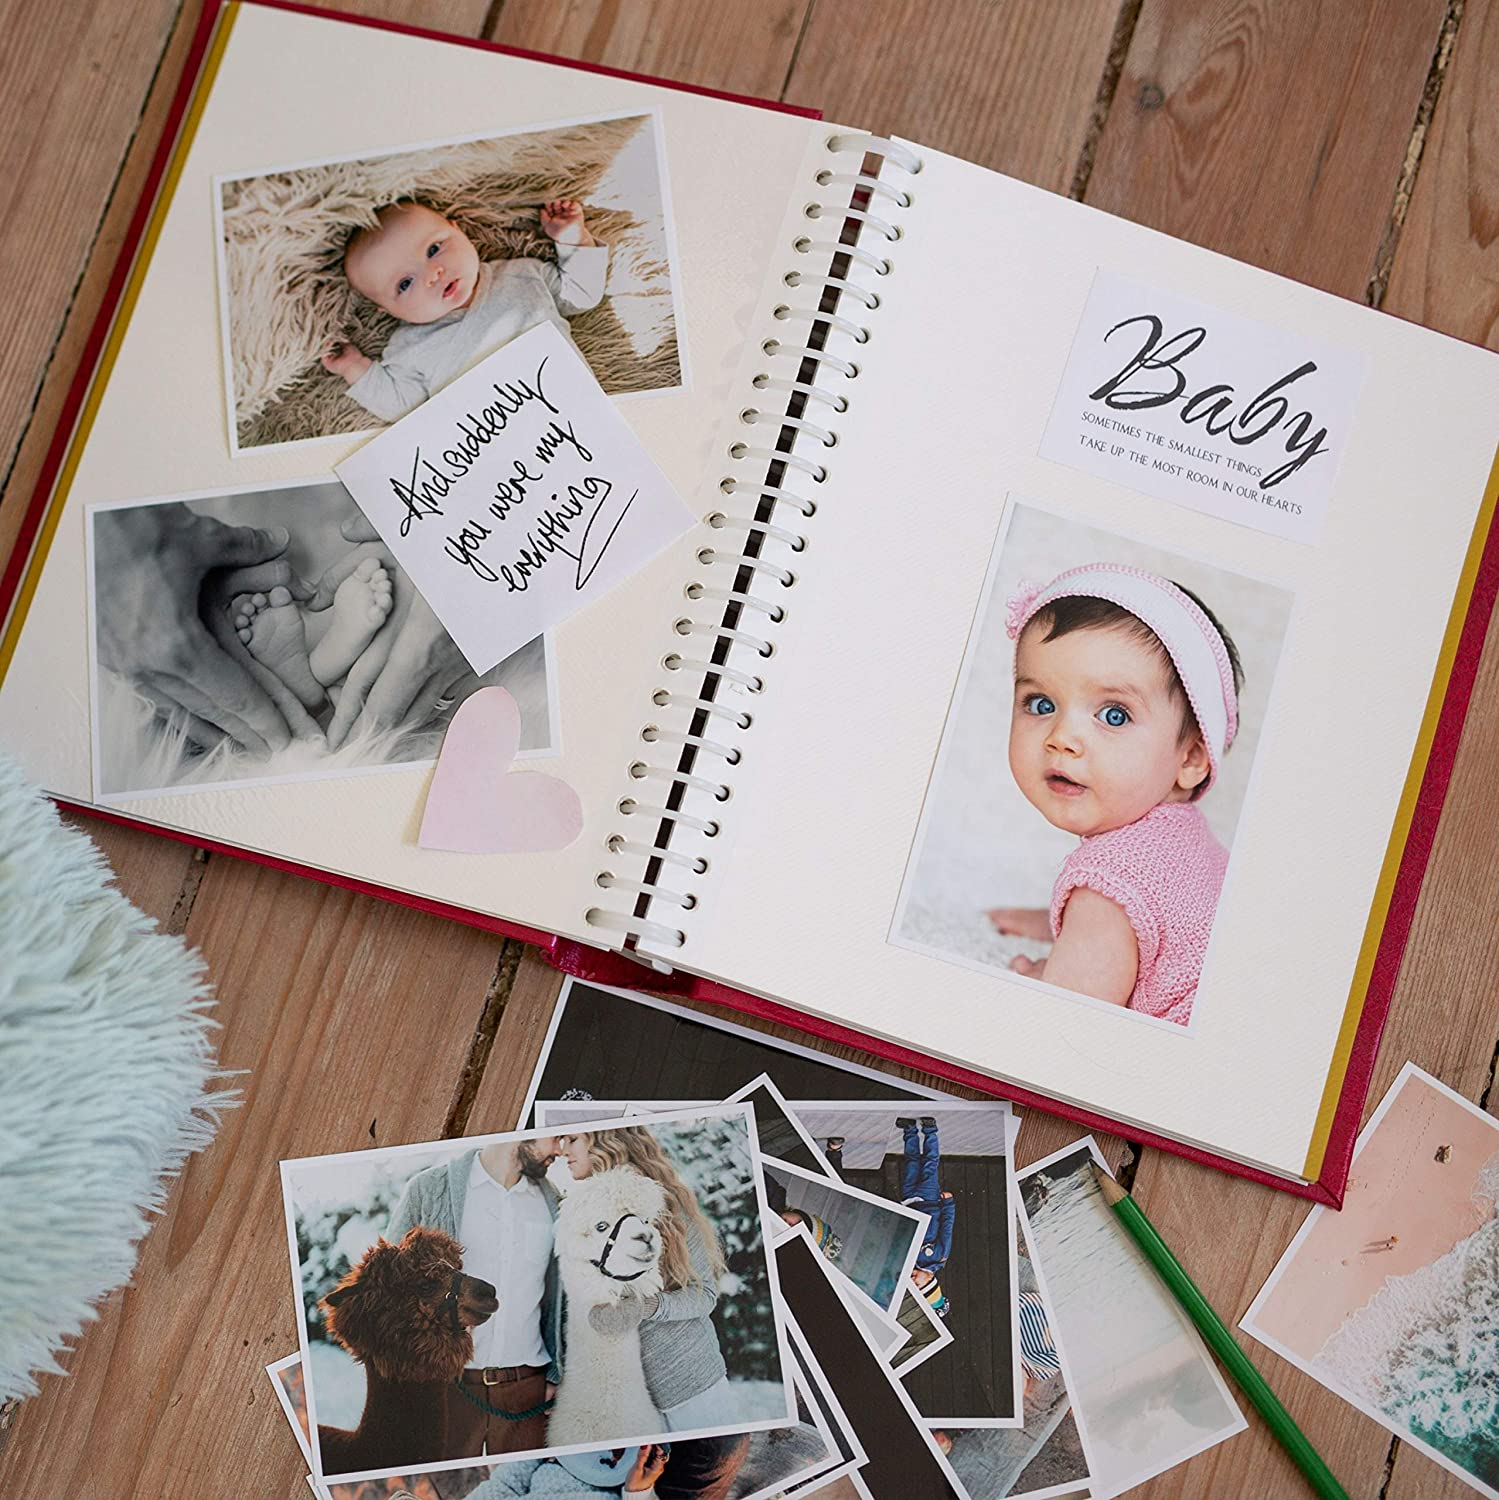 Victoria Collection Self Adhesive Photo Album Personalize Your Fotoalbum with Different Sized Pictures Easy to Fill /& Long Lasting Large Photograph Album Idea